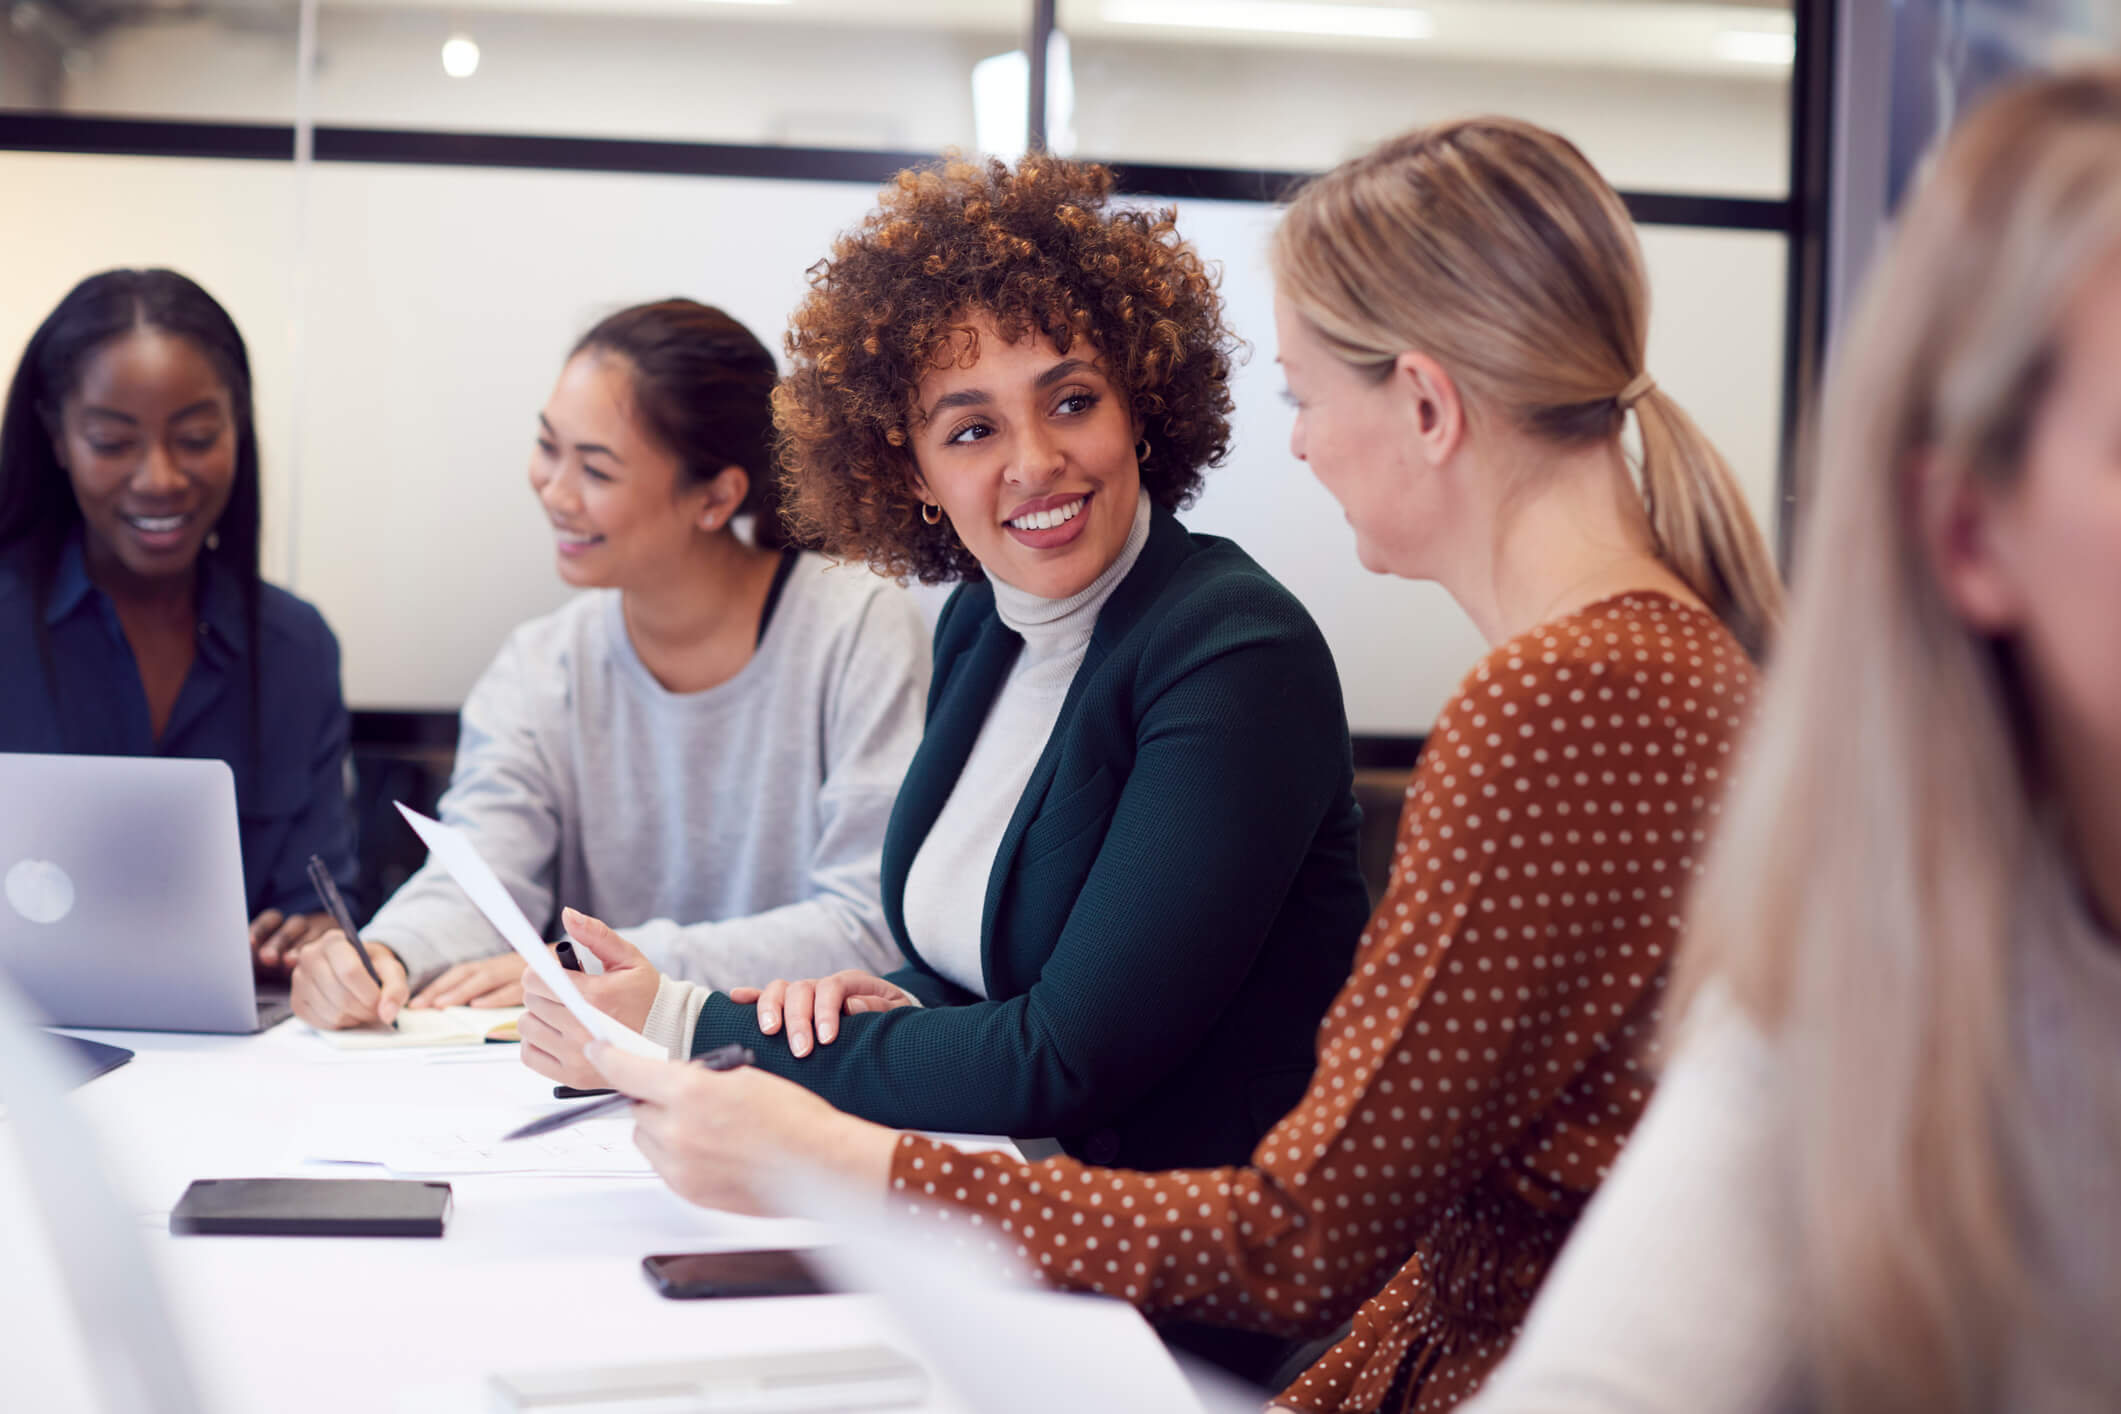 3 Sales Negotiation Tips for Women